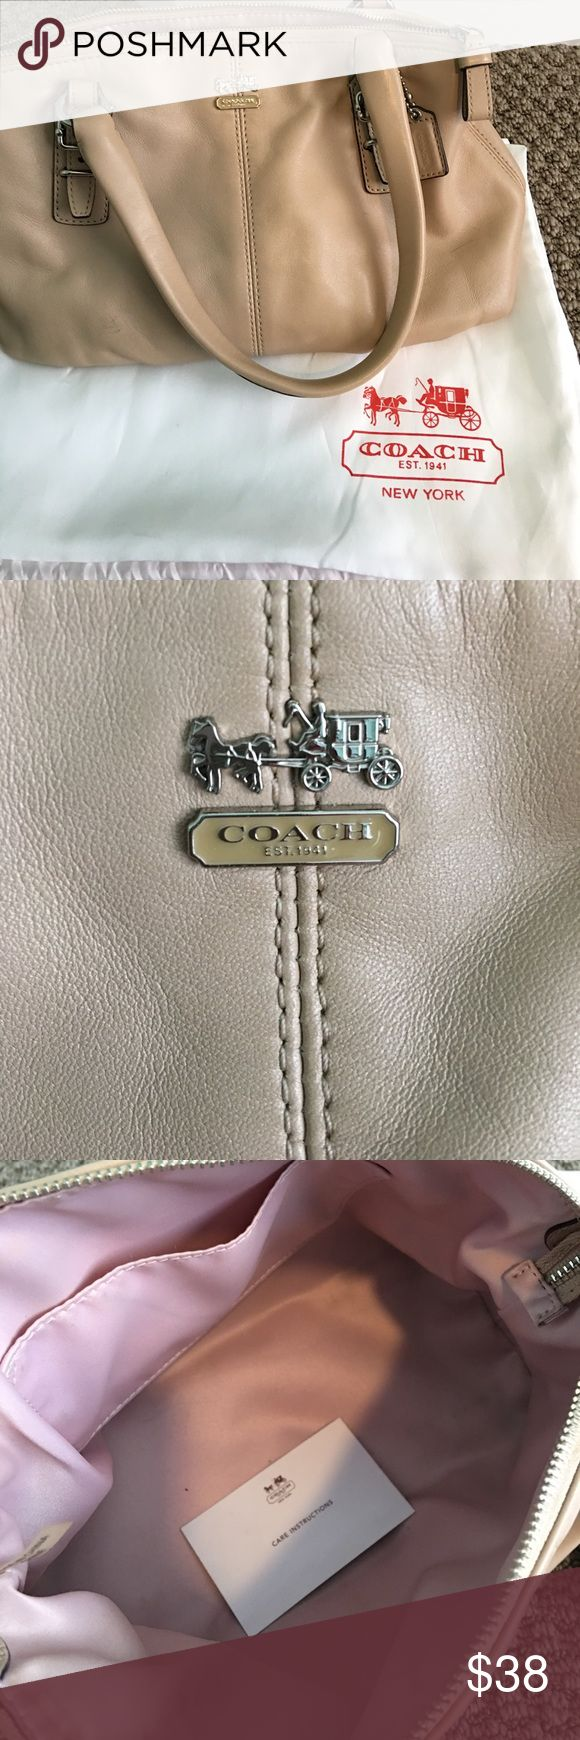 Small Leather Coach Purse W/ Coach Carrying Bag 👛 Small, used leather Coach bag. Beige color with light pink inside. Some signs of wear - price reflects that!! Comes w/ Coach drawstring bag. Bundle & Save! Offers always welcome :) Coach Bags Mini Bags